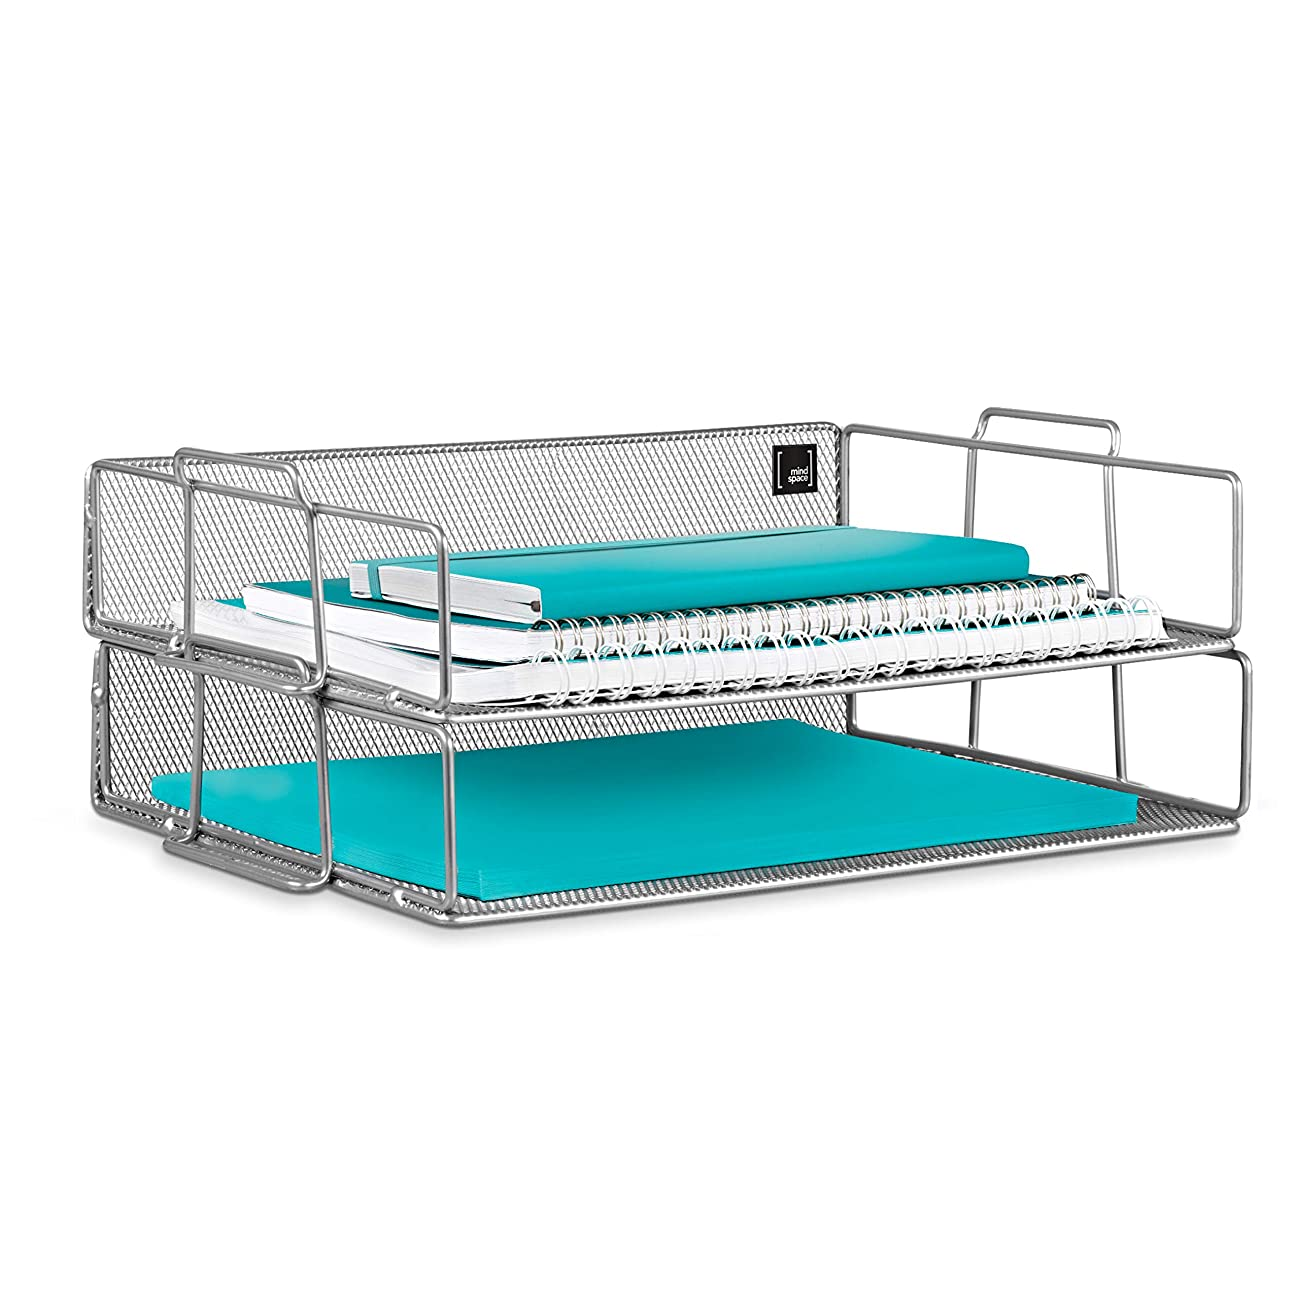 Mindspace 2 Tier Stackable Letter Tray| Paper Tray Desk Organizer | The Mesh Collection, Silver